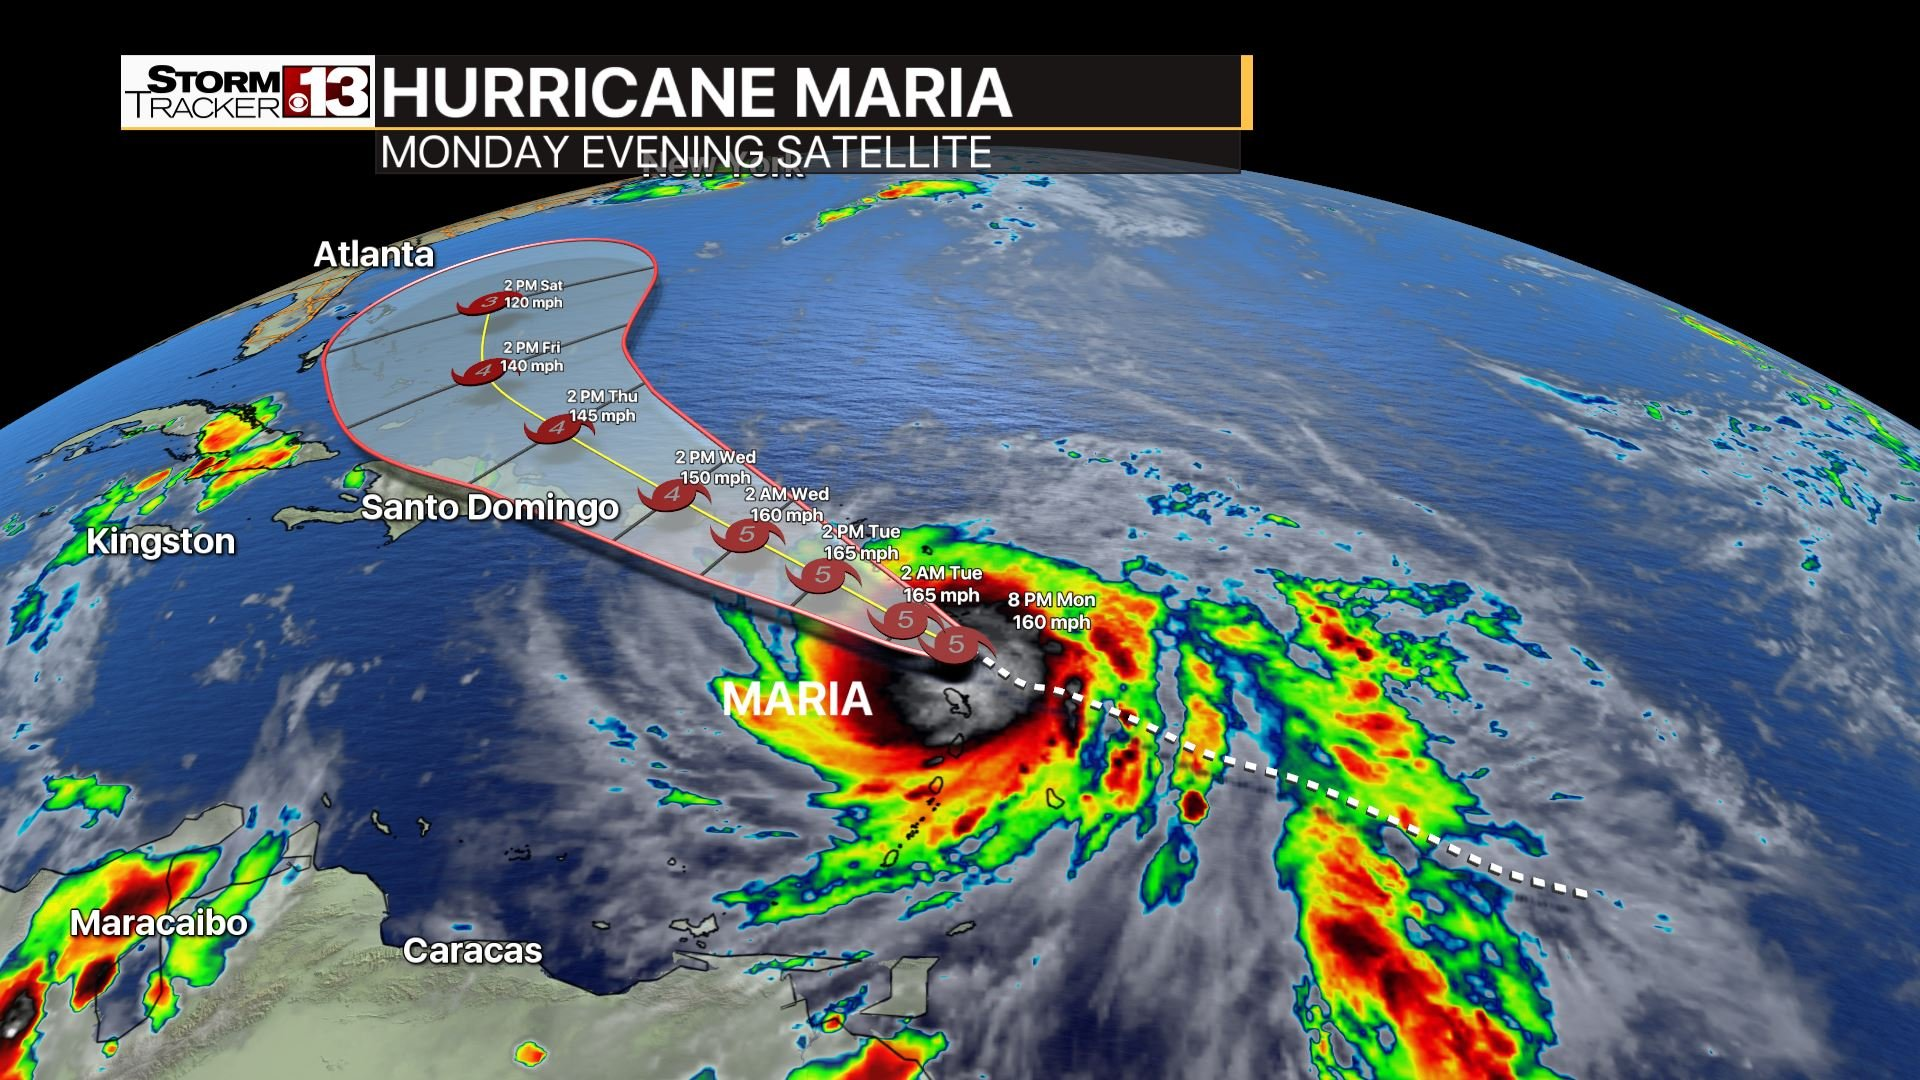 StormTracker 13 is keeping a sharp eye on Maria.